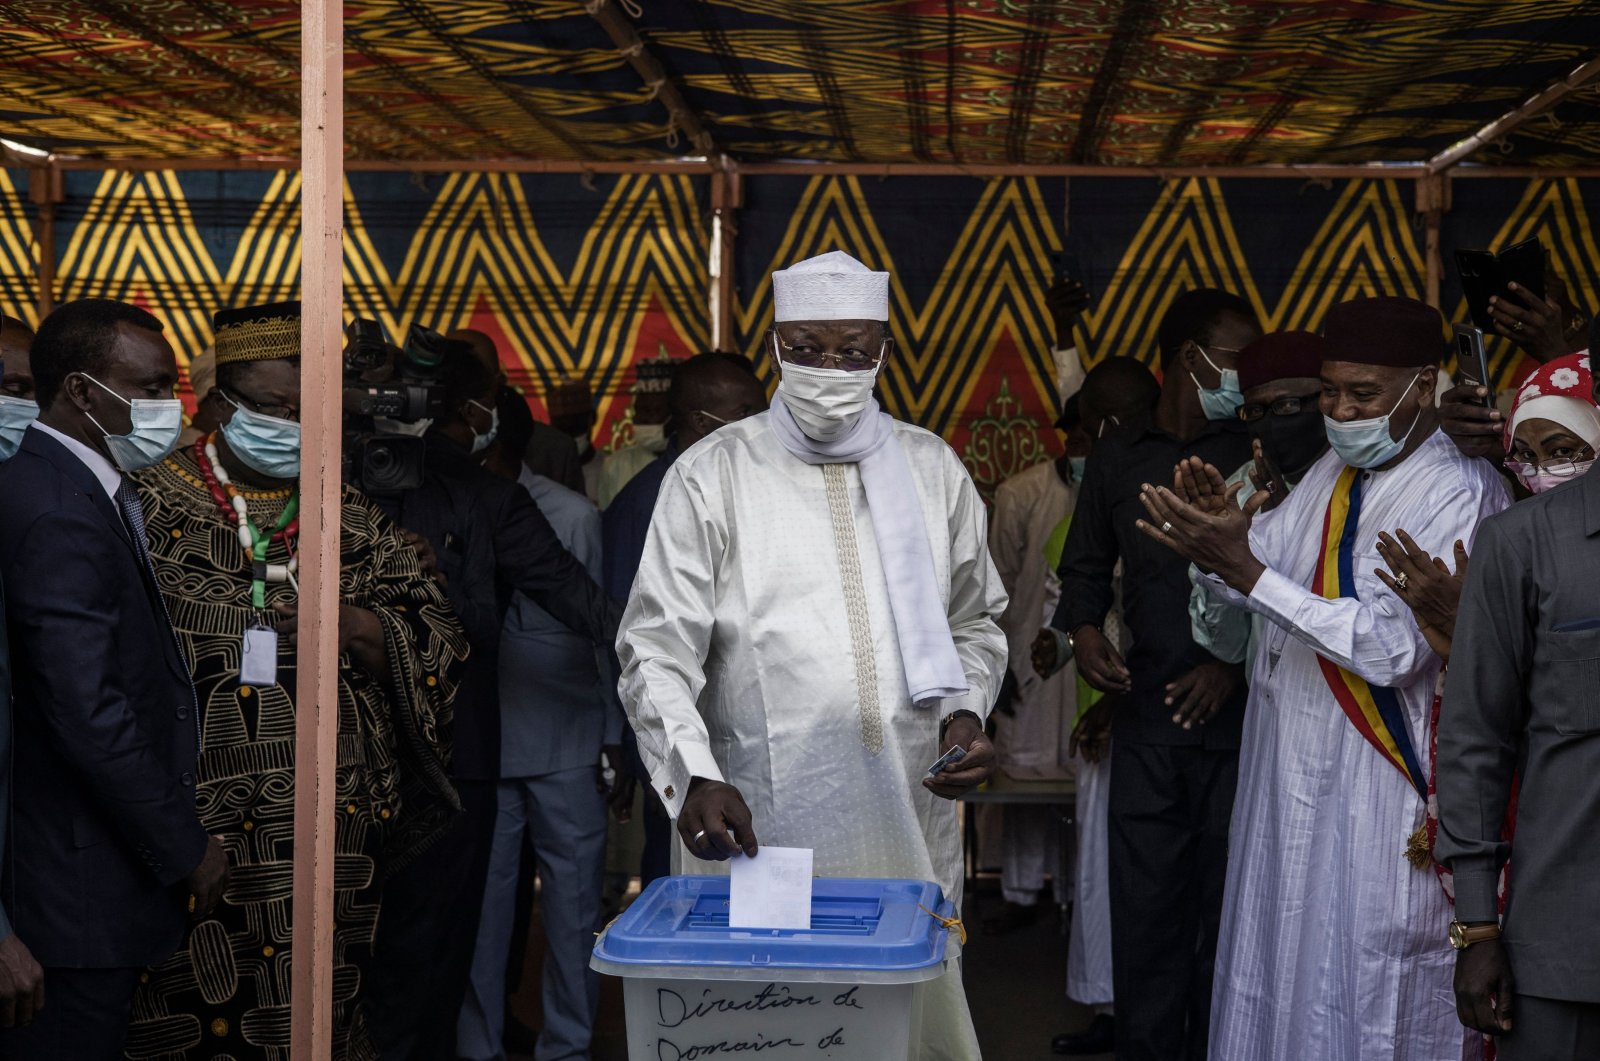 Chadian President Idriss Deby Itno (C) casts his ballot at a polling station in N'djamena, on April 11, 2021. (AFP Photo)